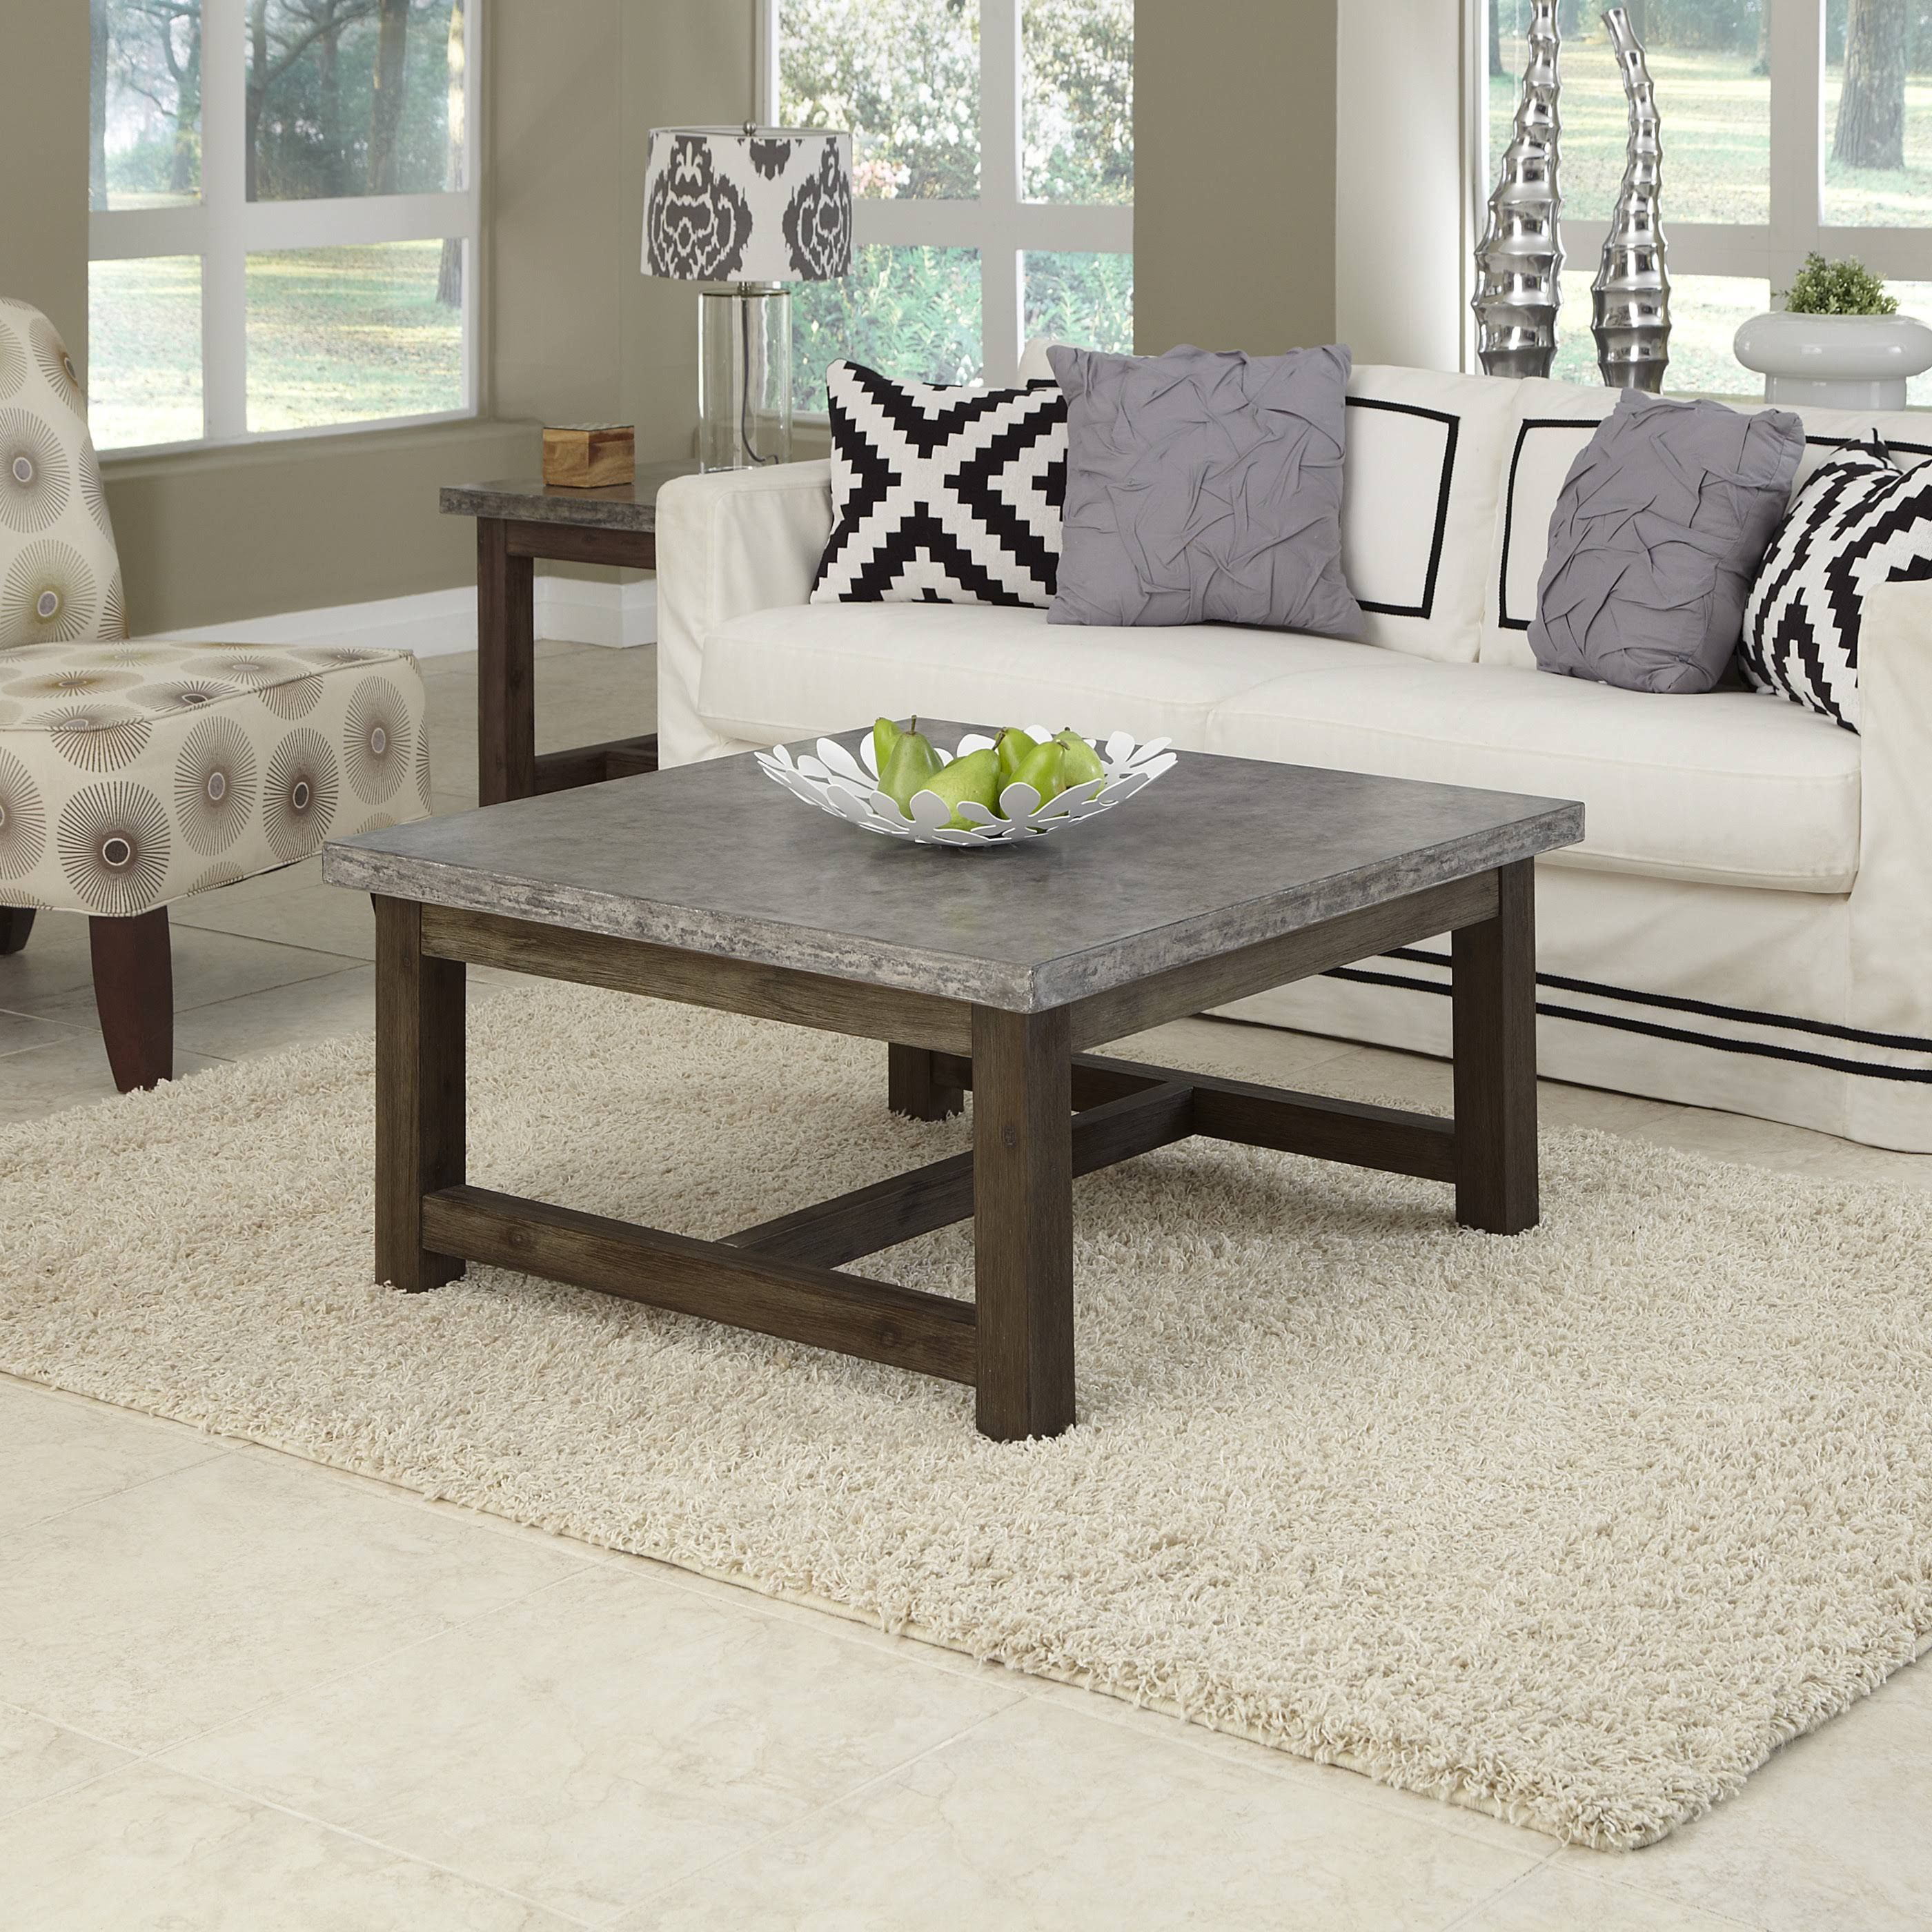 home styles 5133 21 concrete chic gray brown square coffee table